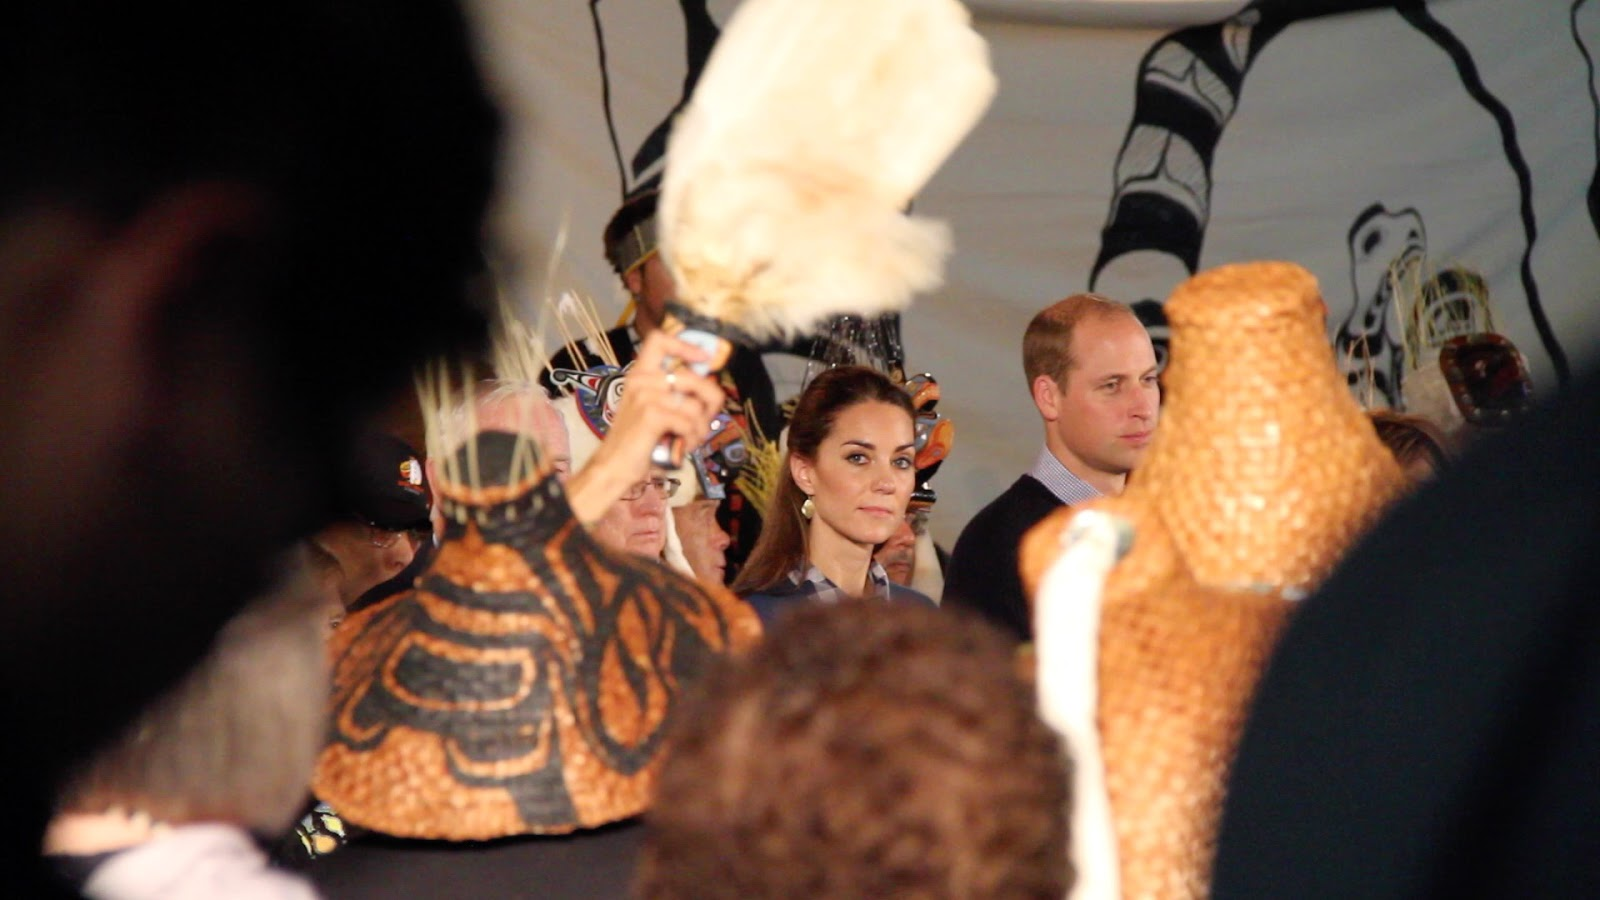 The Duchess spikes the camera!